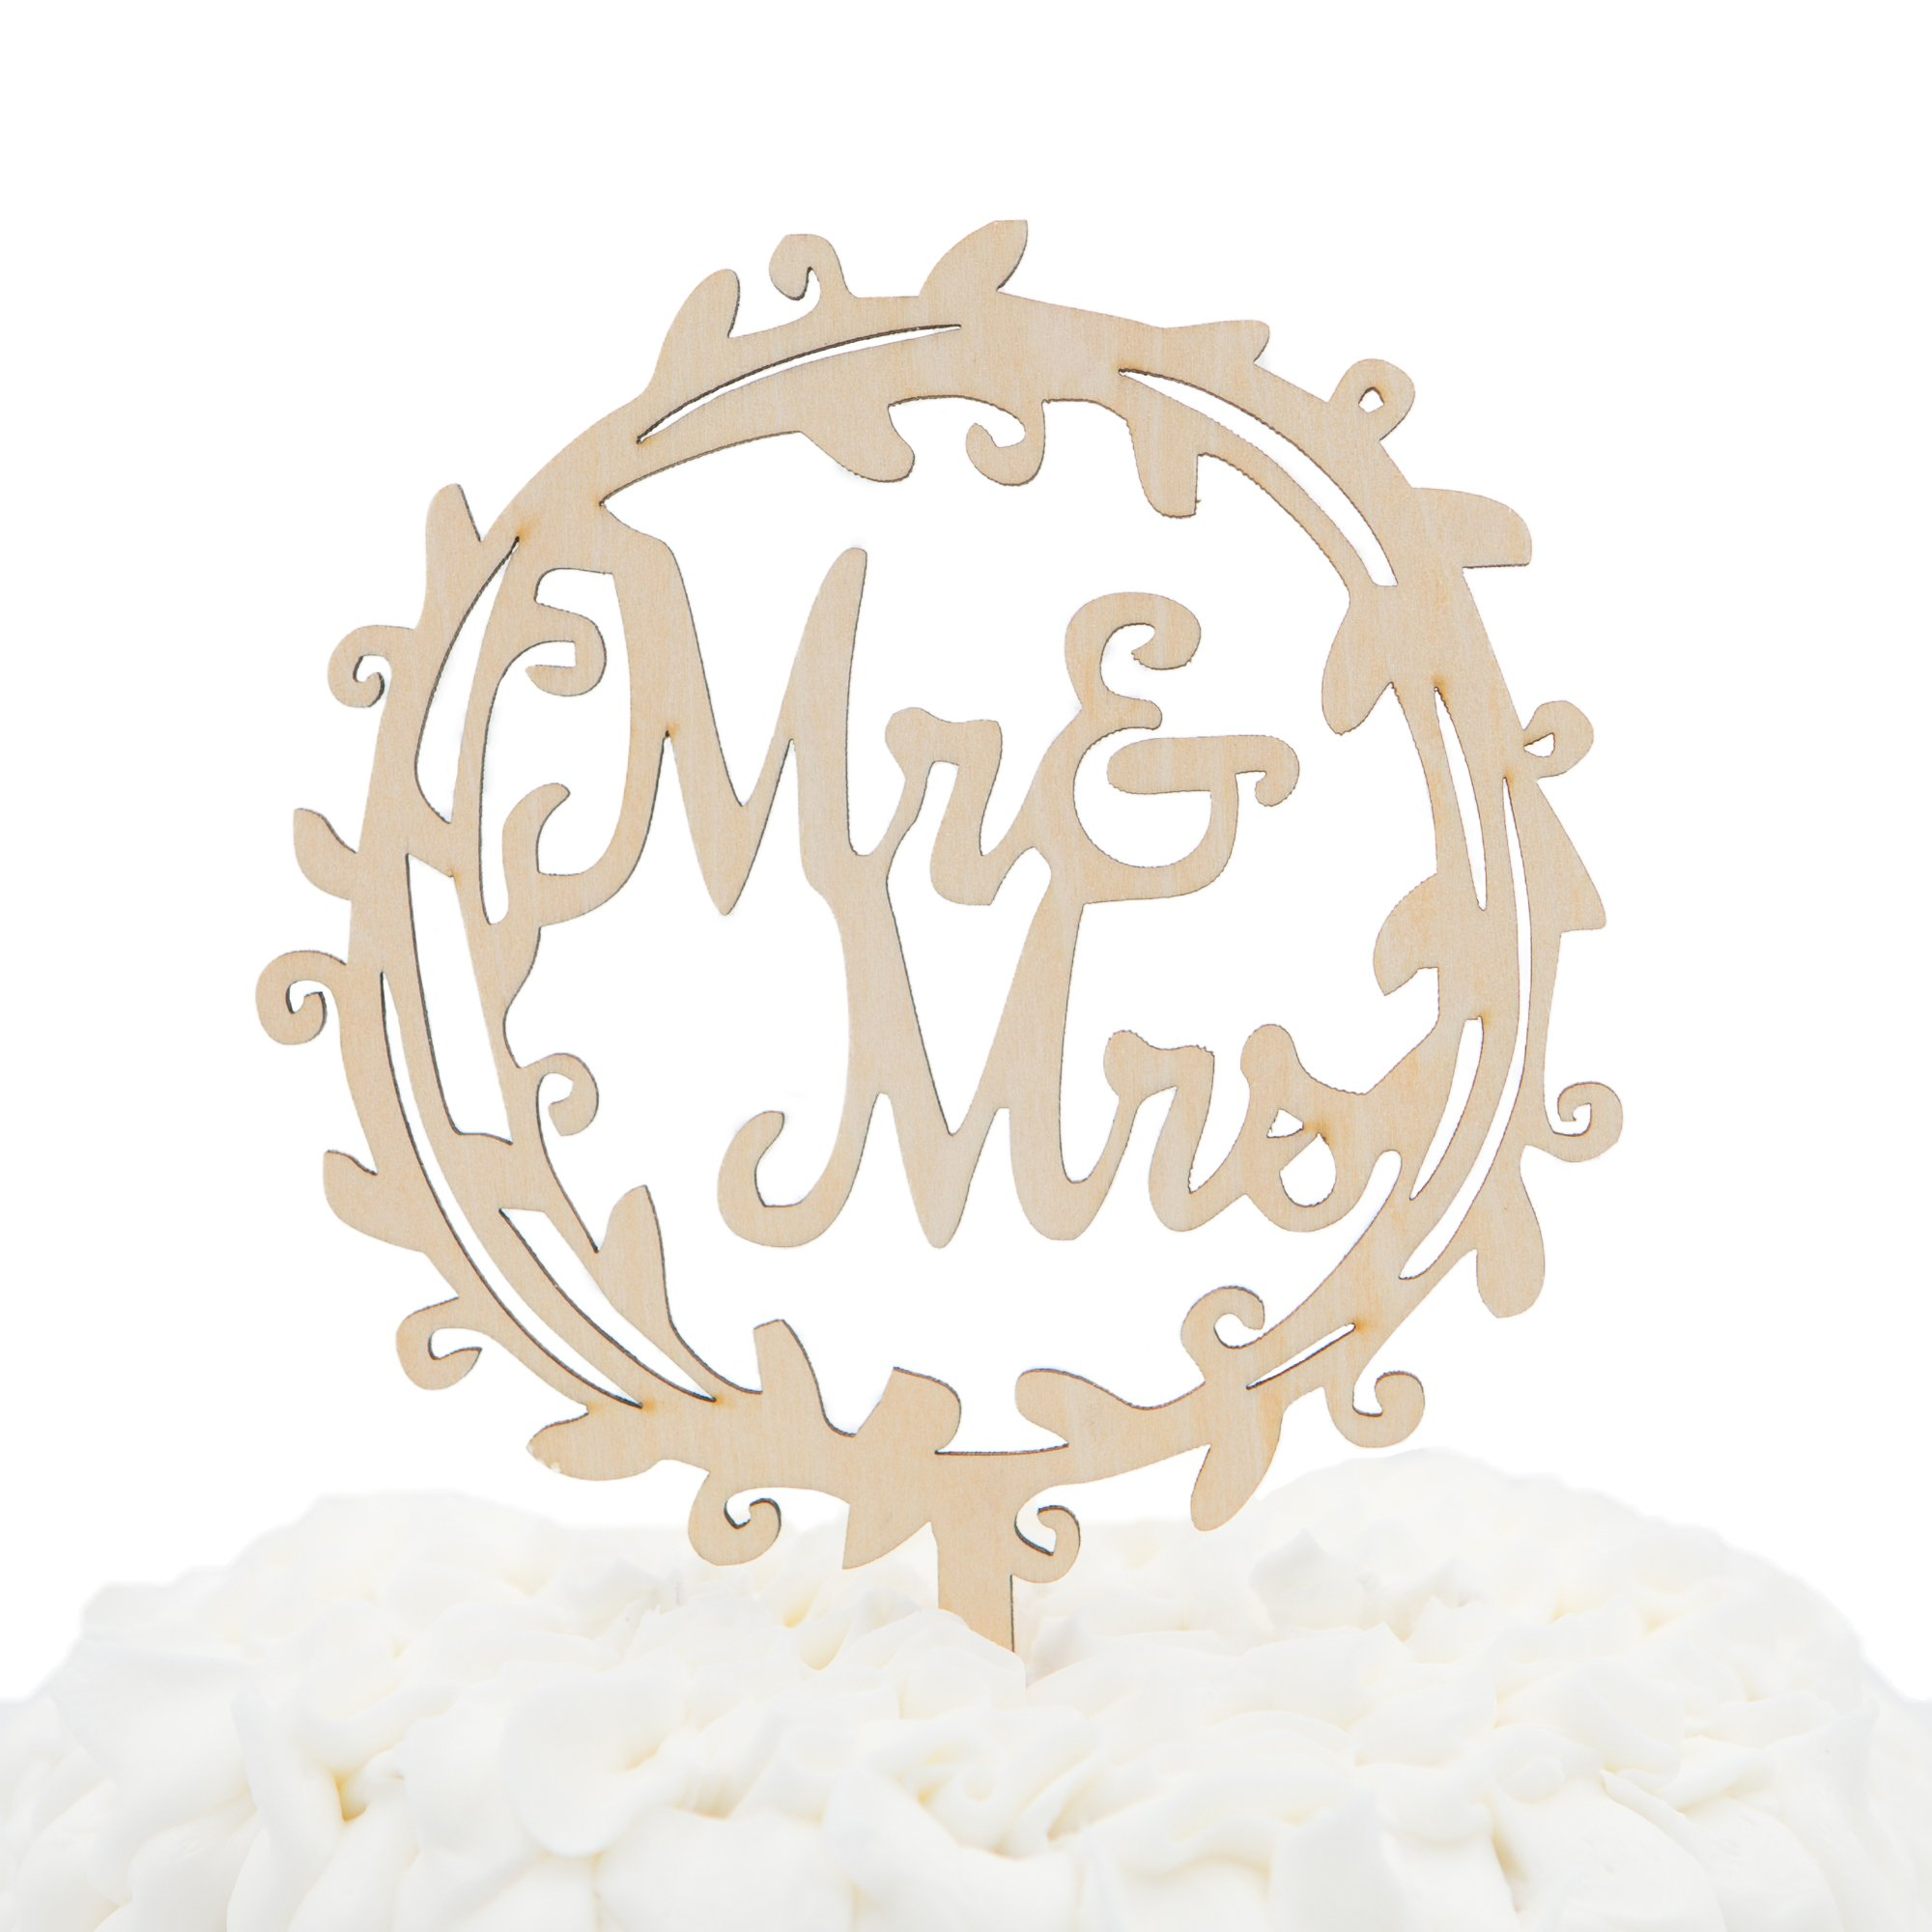 Ella Celebration Mr & Mrs Wooden Wedding Cake Topper Small 4.5 Inches Rustic Wood Floral Wreath Flowers, Olive Branch (Mr & Mrs Wreath) by Ella Celebration (Image #1)